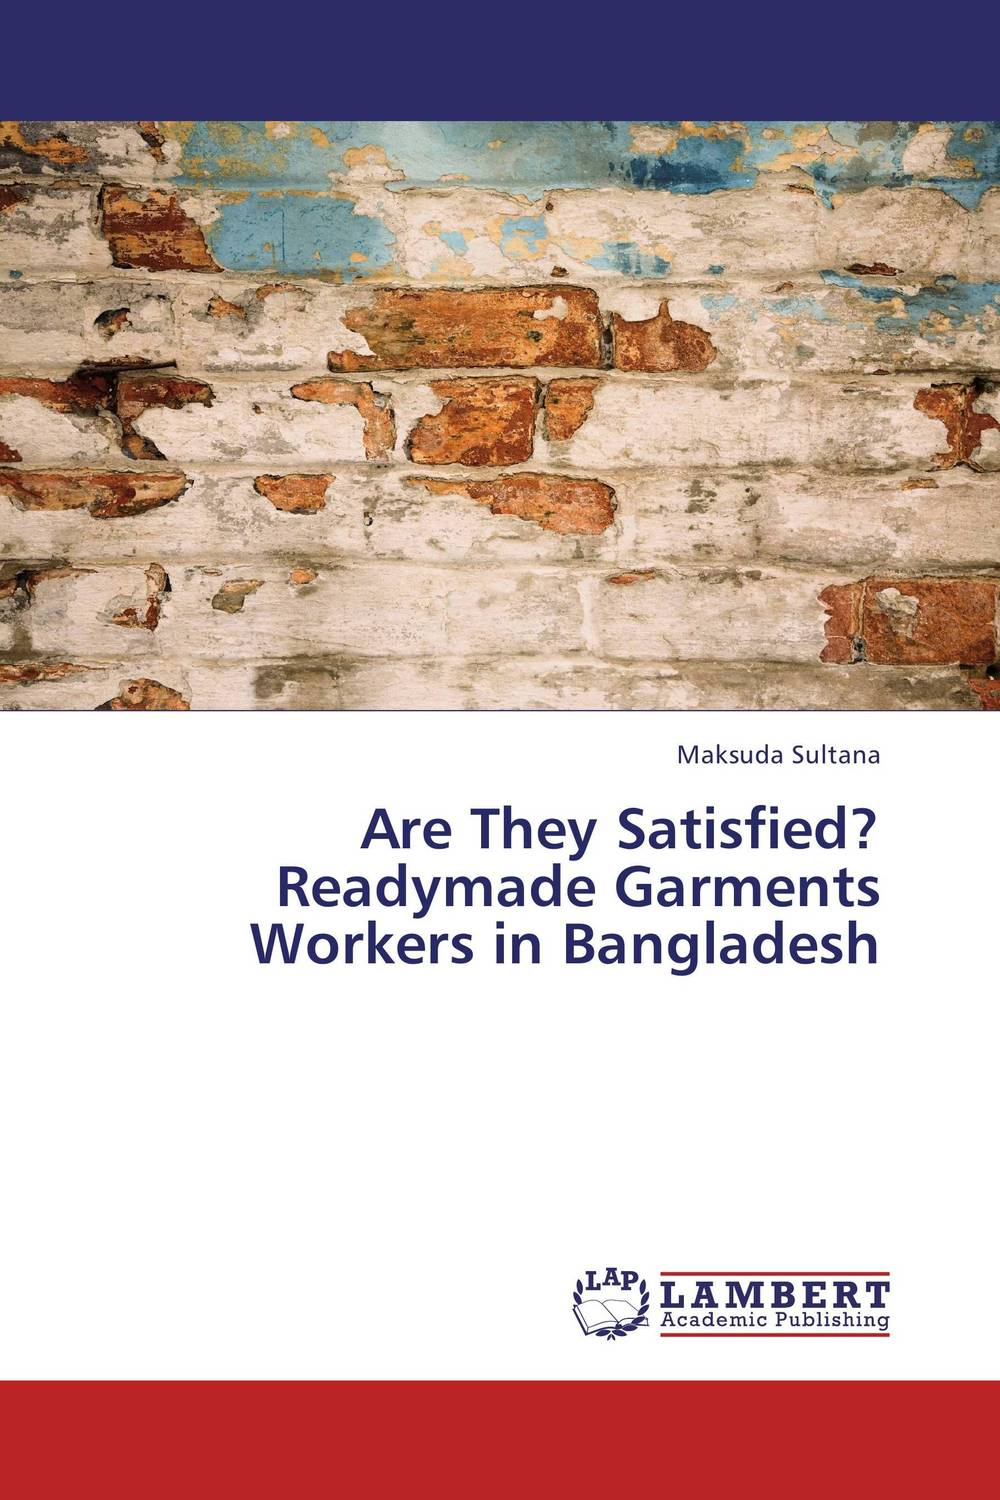 Are They Satisfied? Readymade Garments Workers in Bangladesh the role of absurdity within english humour